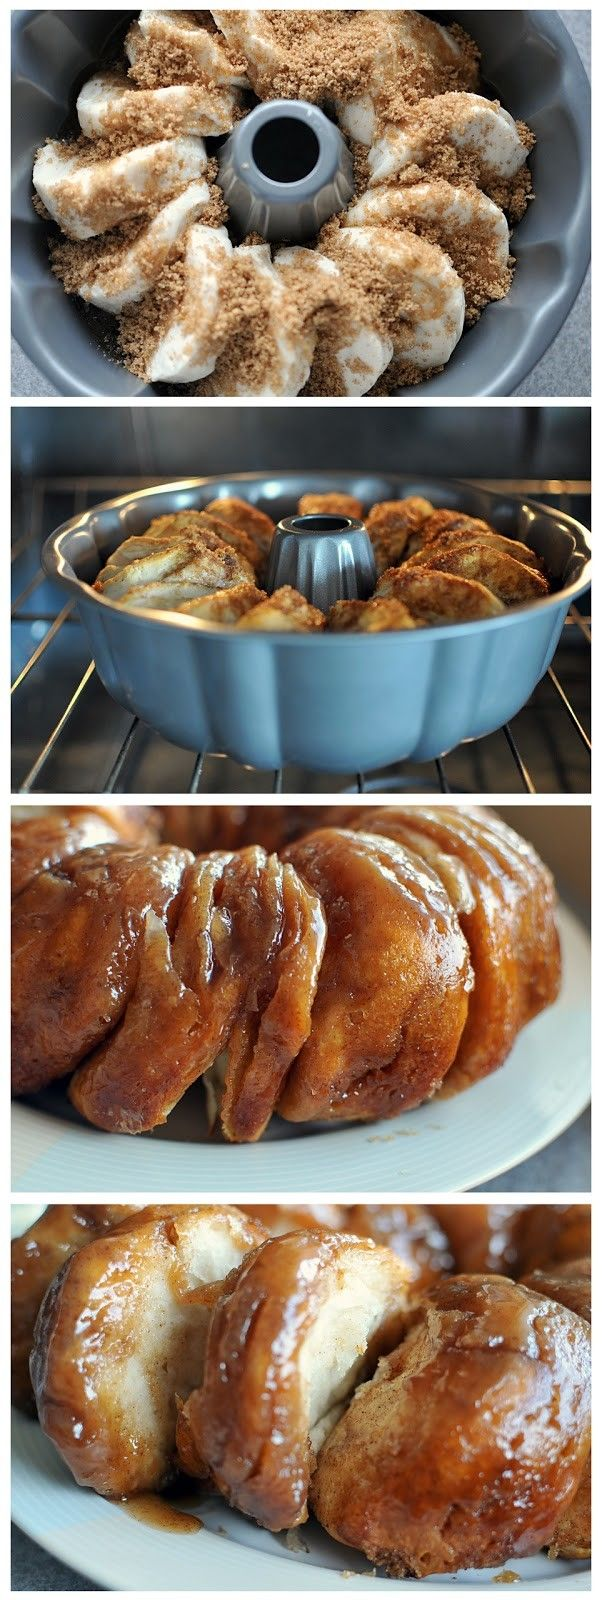 21 Game-changing ways to use canned biscuit dough: Canned biscuit dough recipe hacks